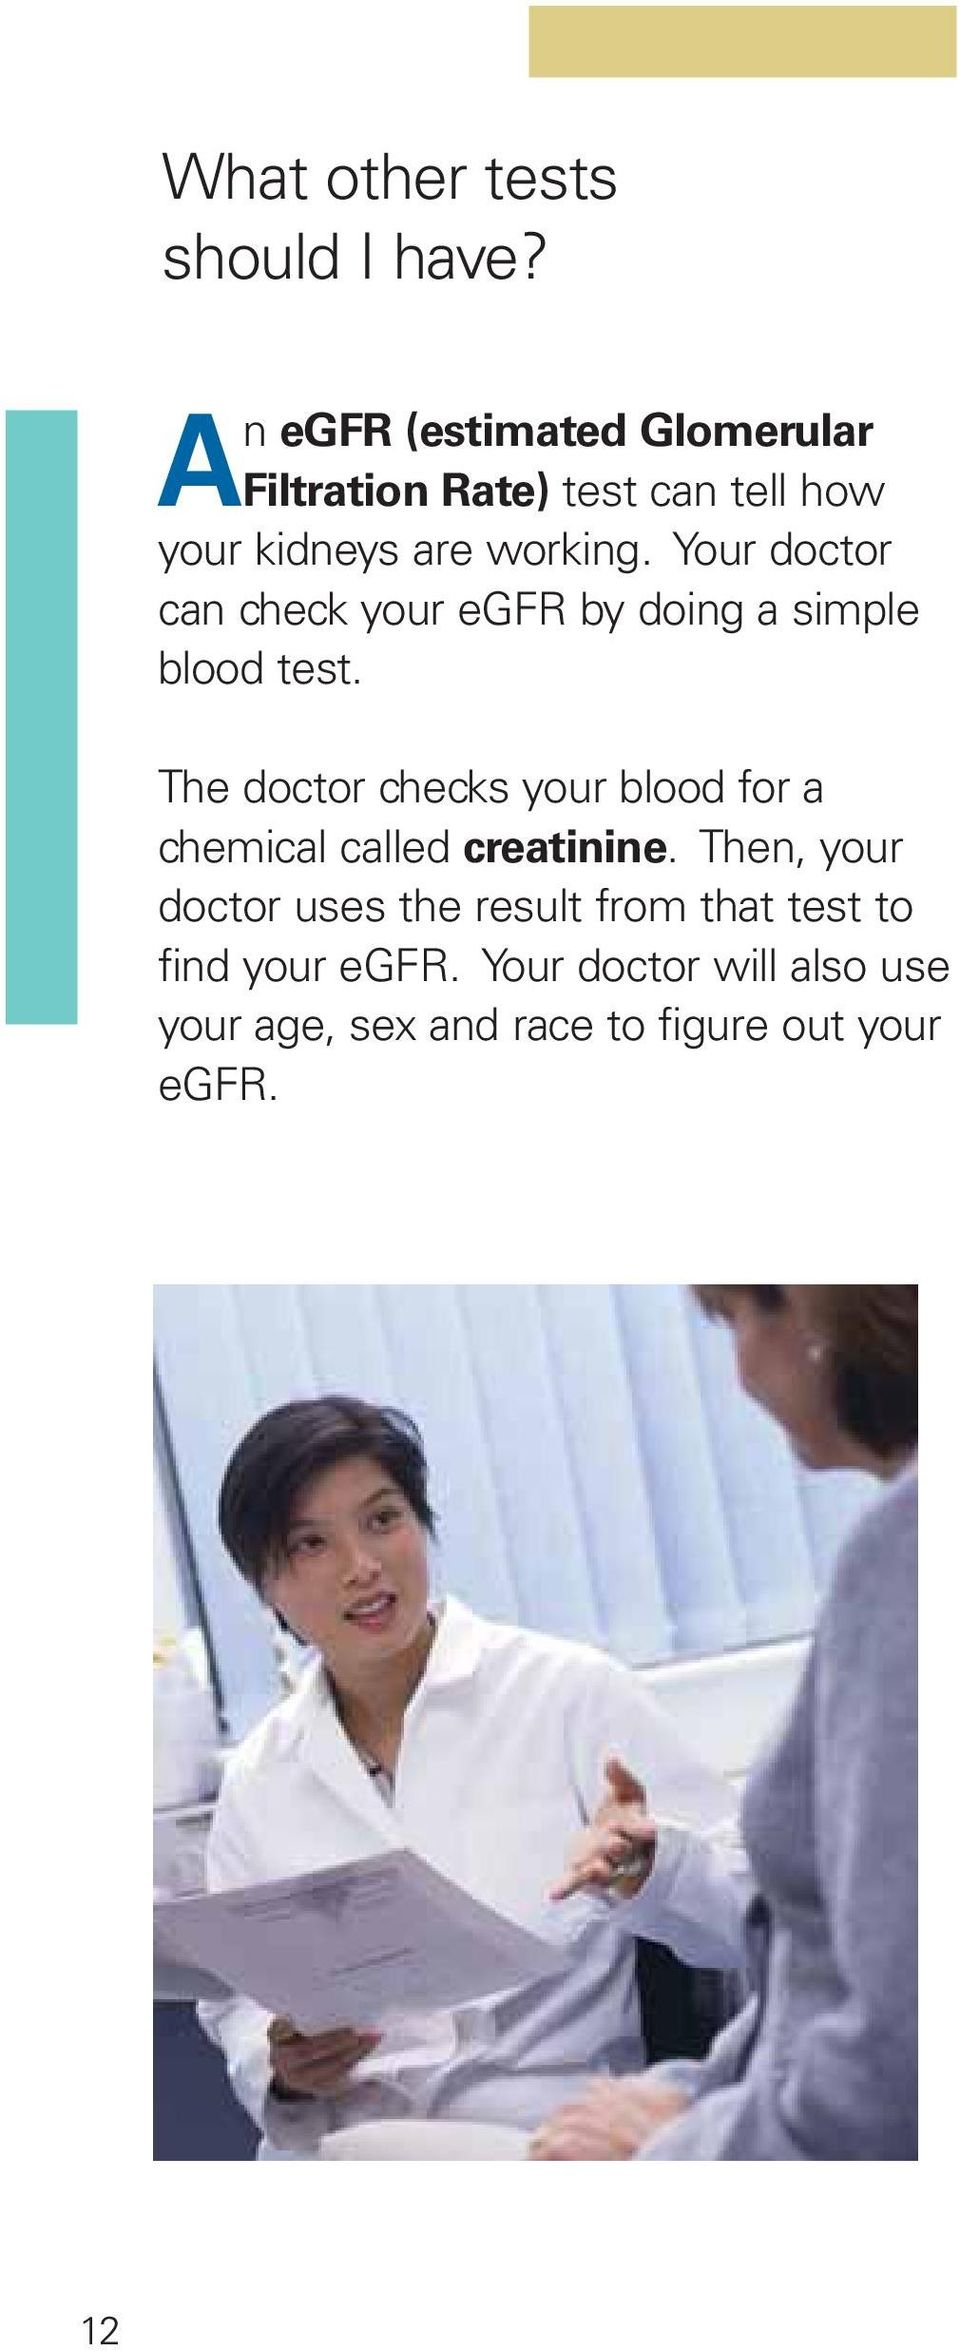 Your doctor can check your egfr by doing a simple blood test.